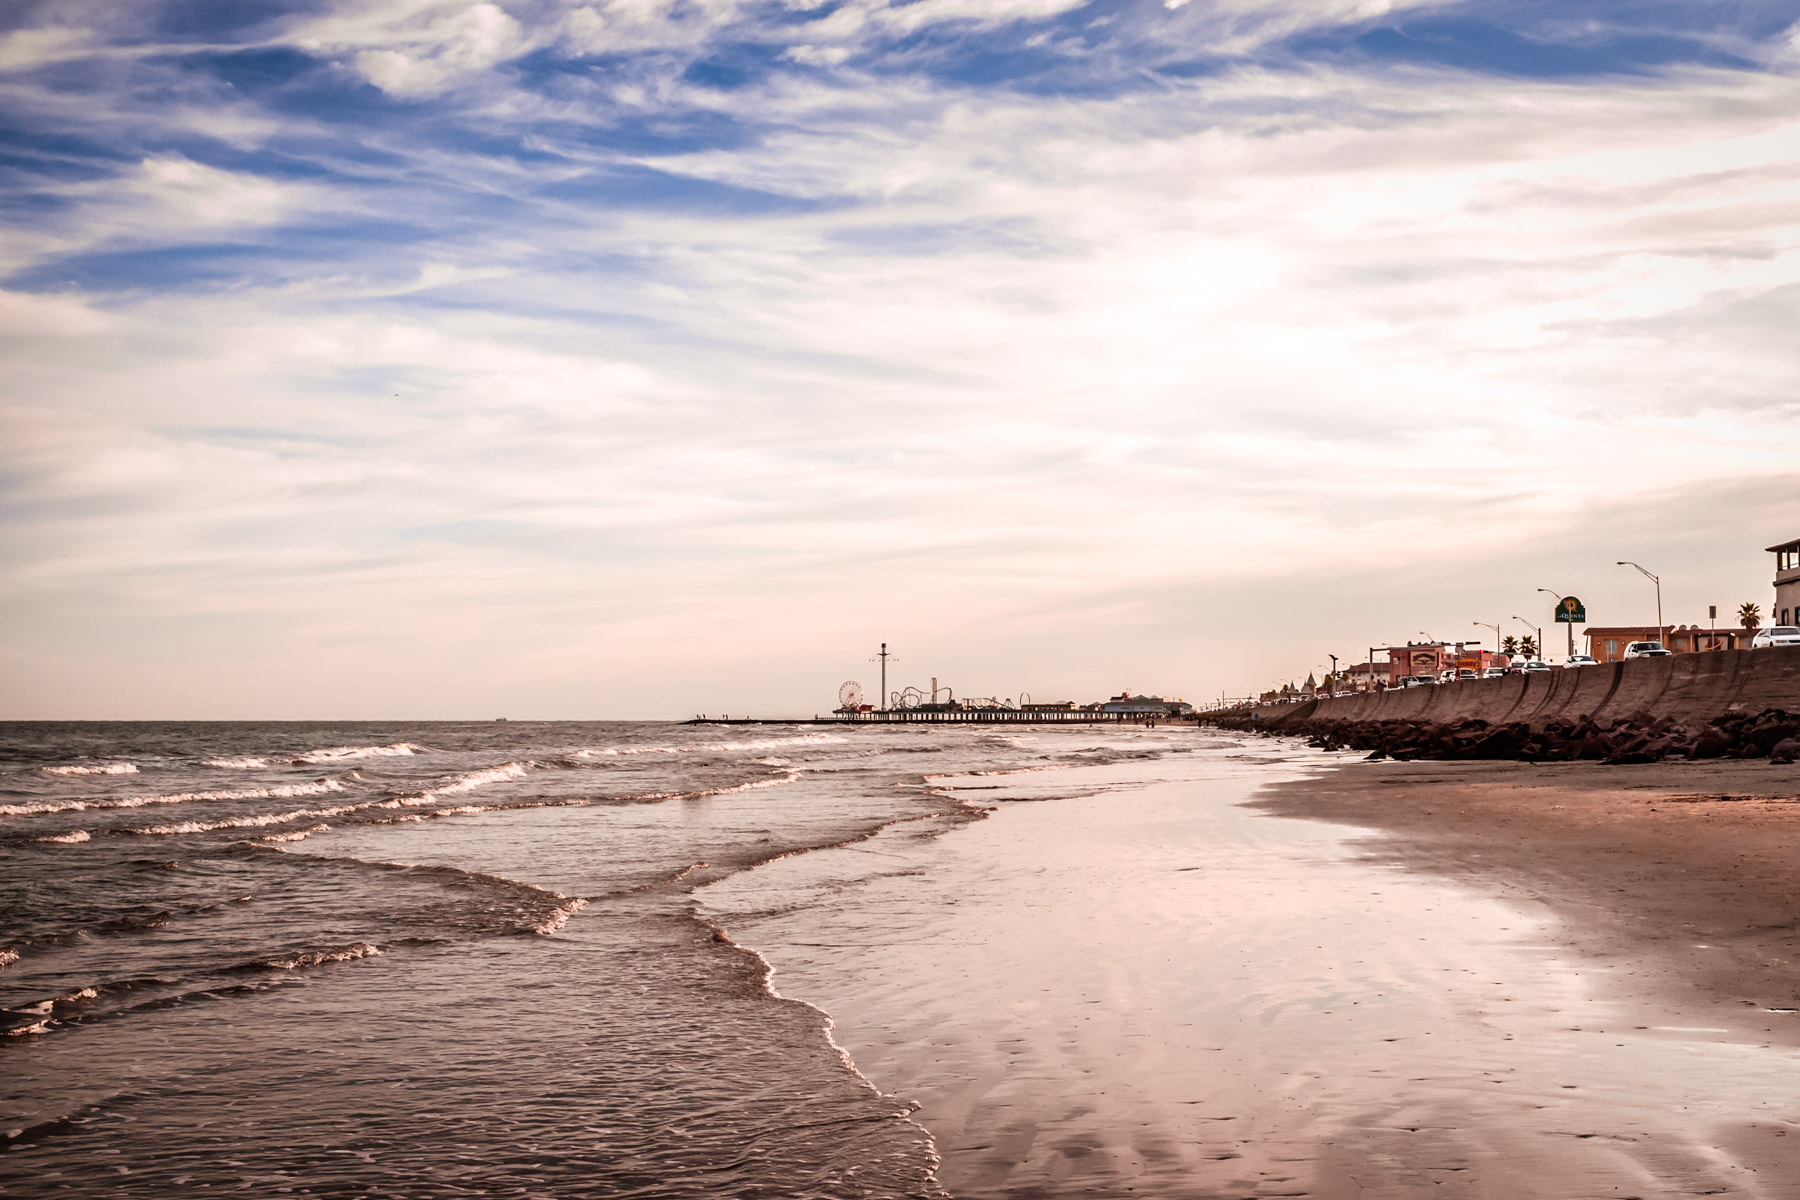 Waves roll onto the beach as evening descends on Galveston, Texas.